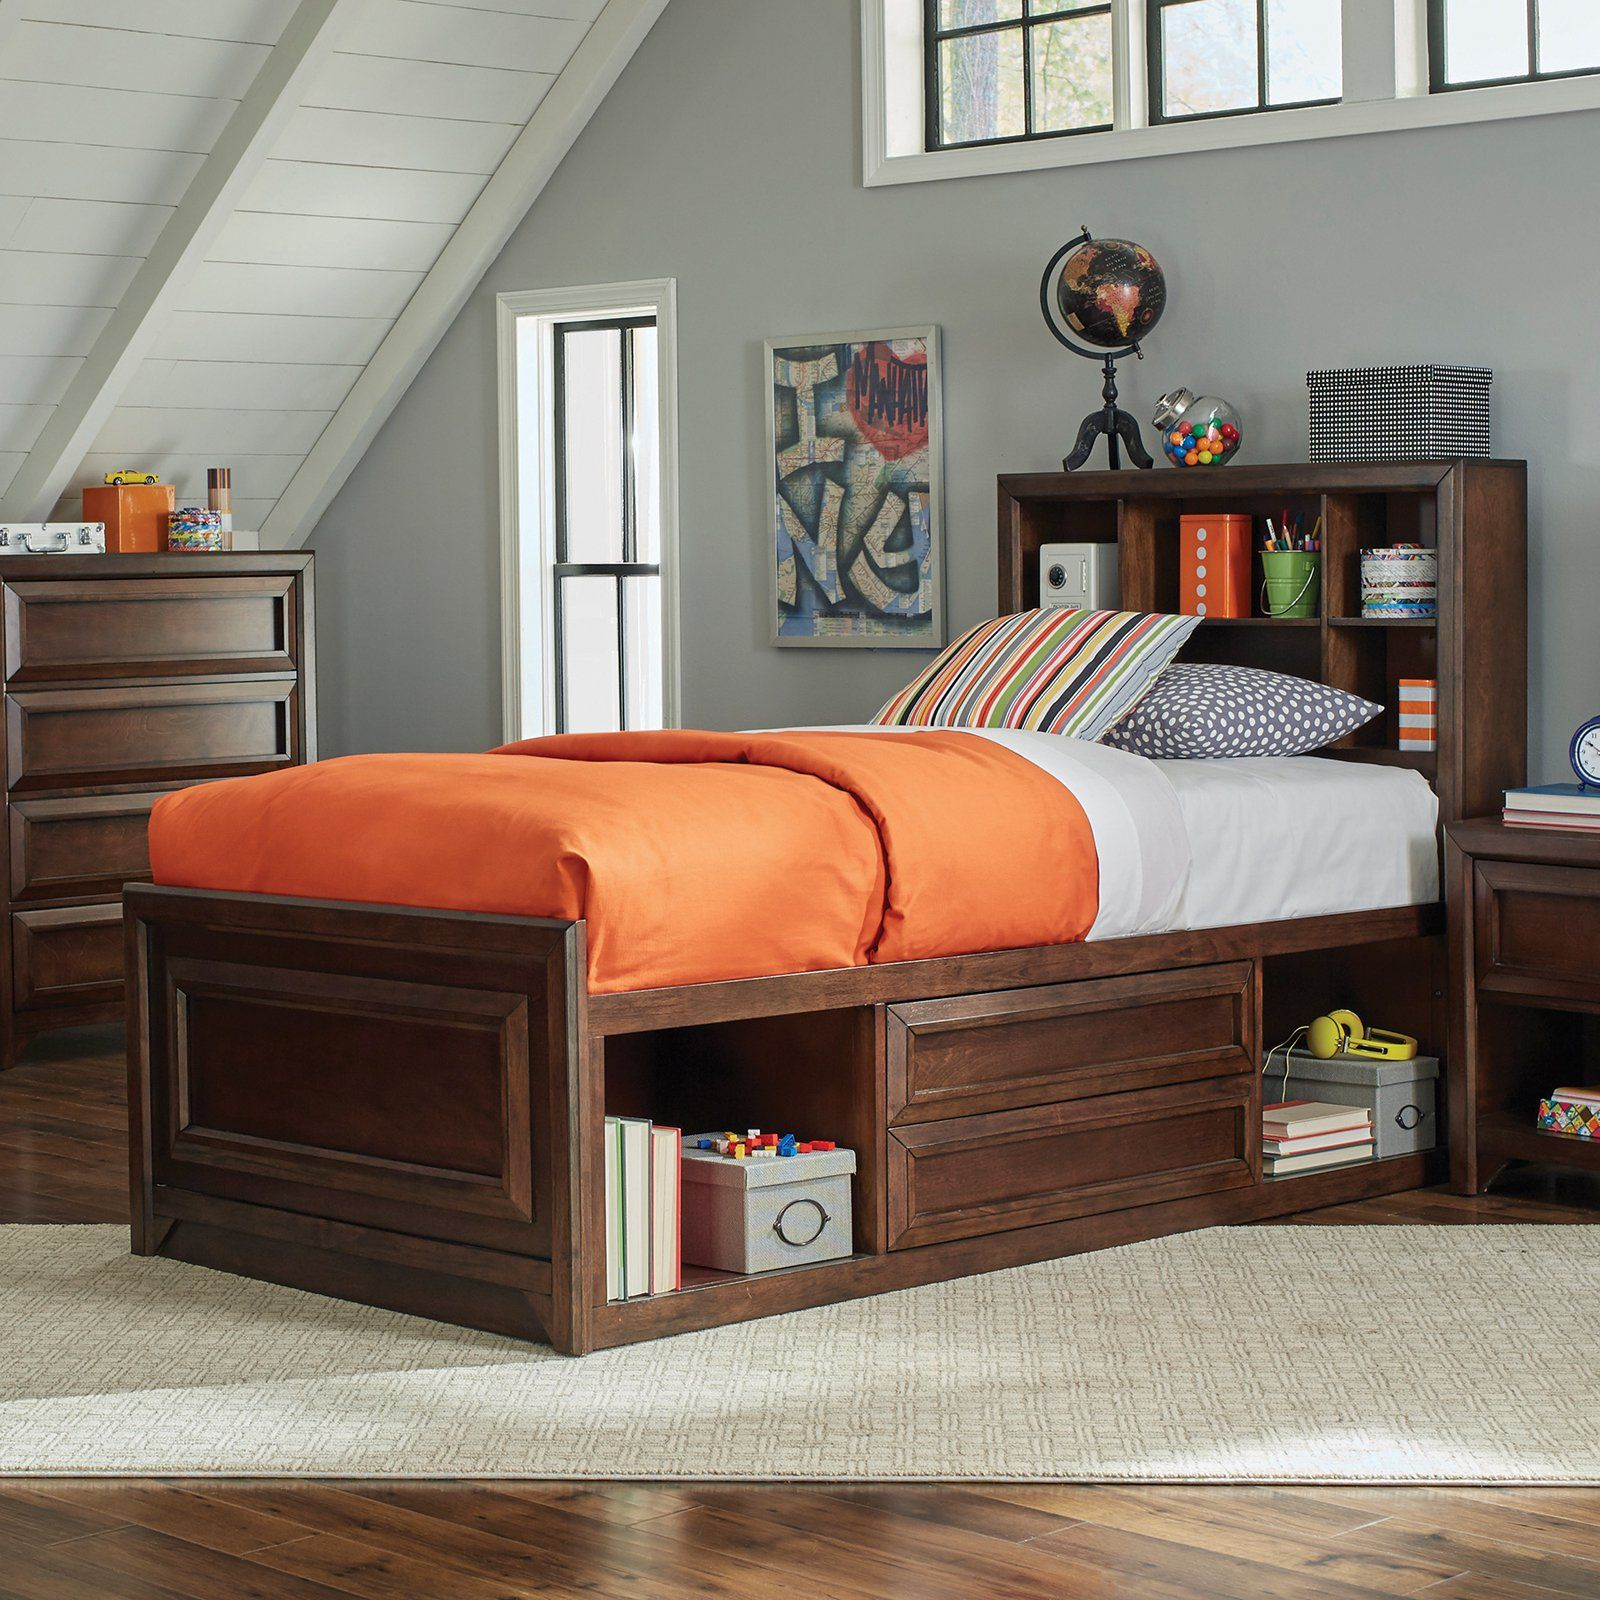 Coaster Furniture Greenough Twin Bed with Bookcase Storage